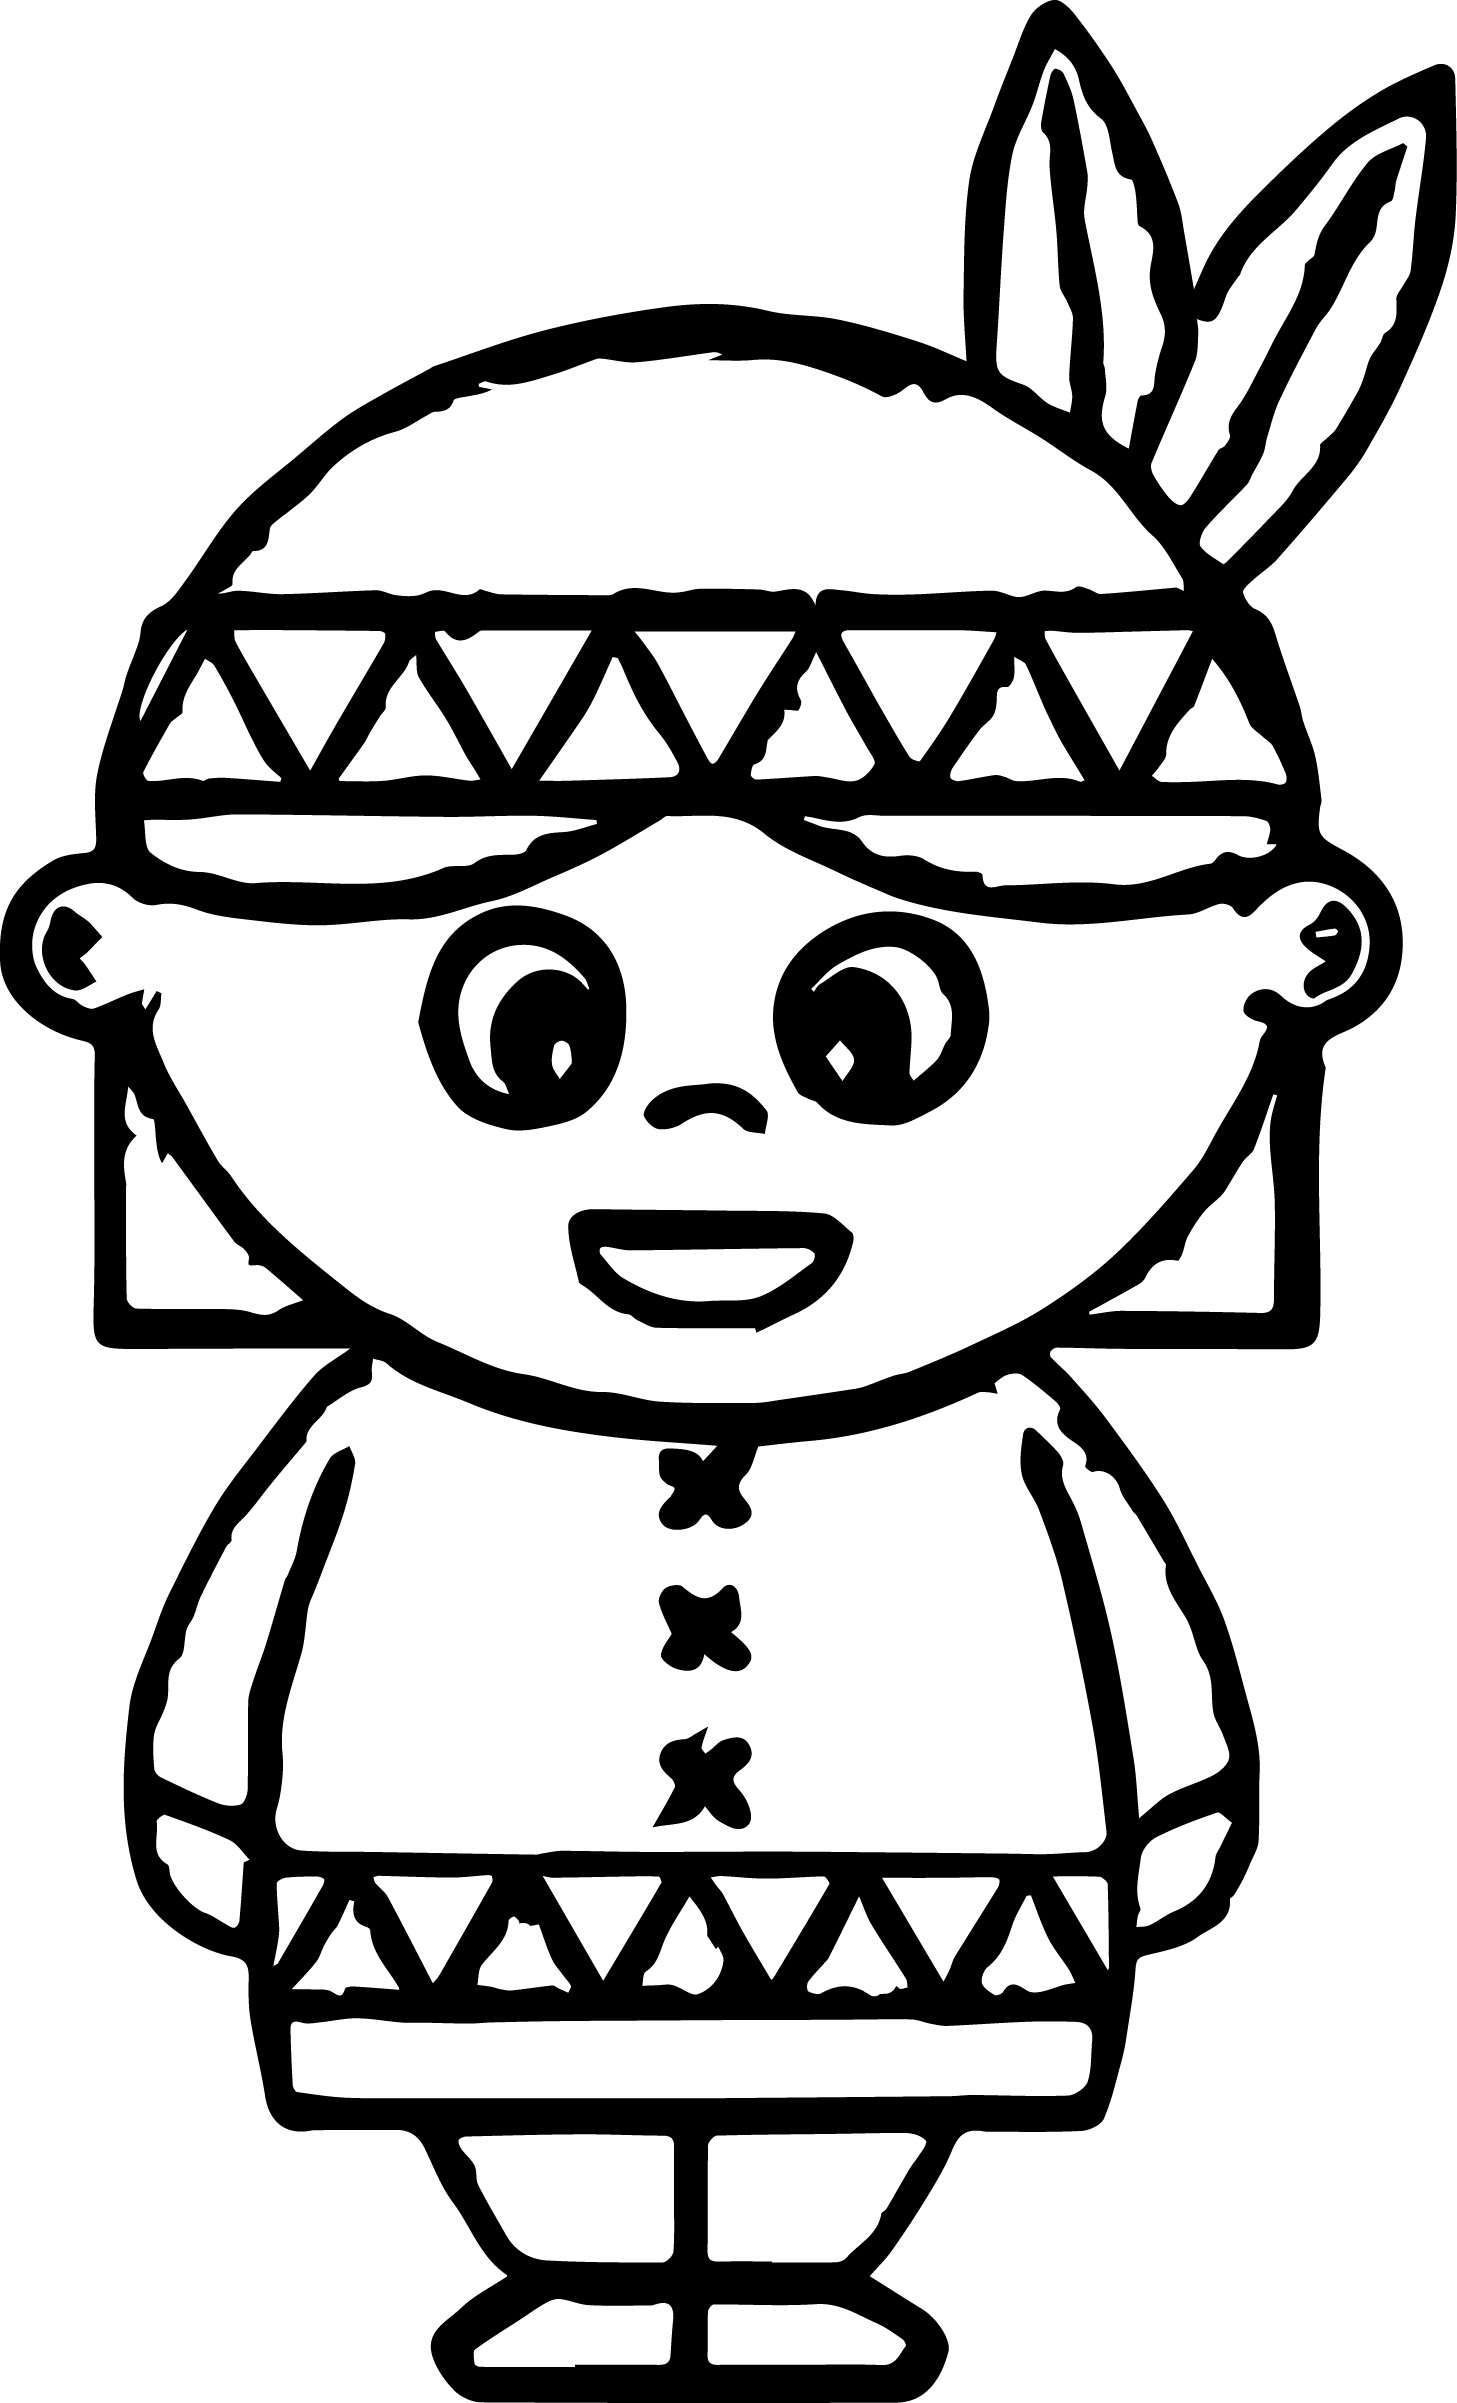 coloring pages of indians - photo#9